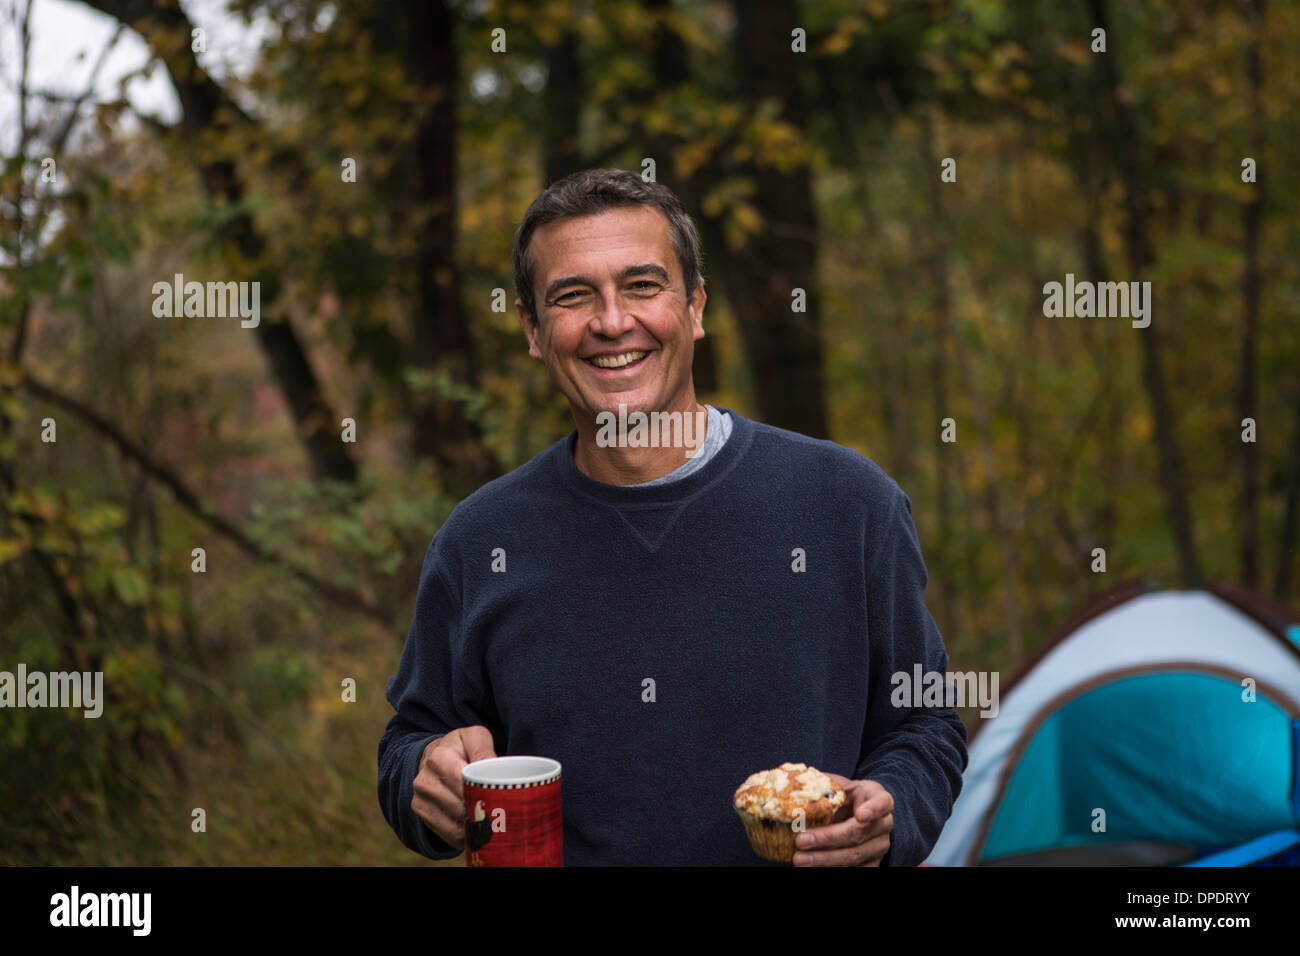 Mature man in forest holding cupcake and hot drink - Stock Image